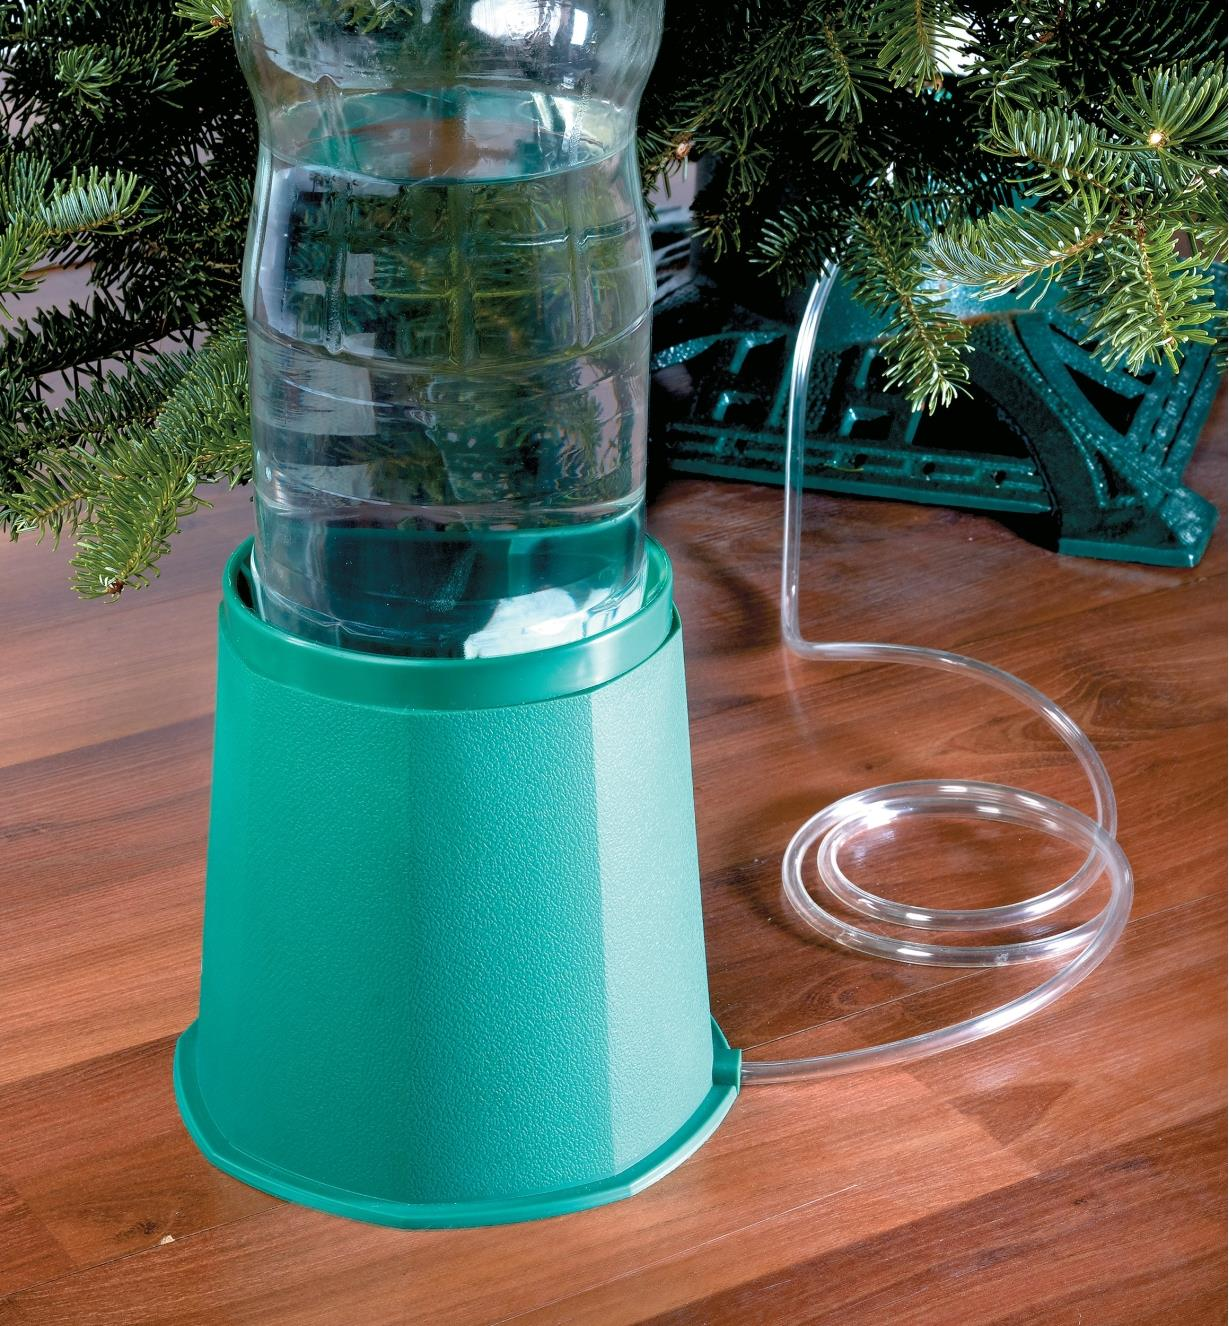 CA107 - Christmas Tree Water Fountain